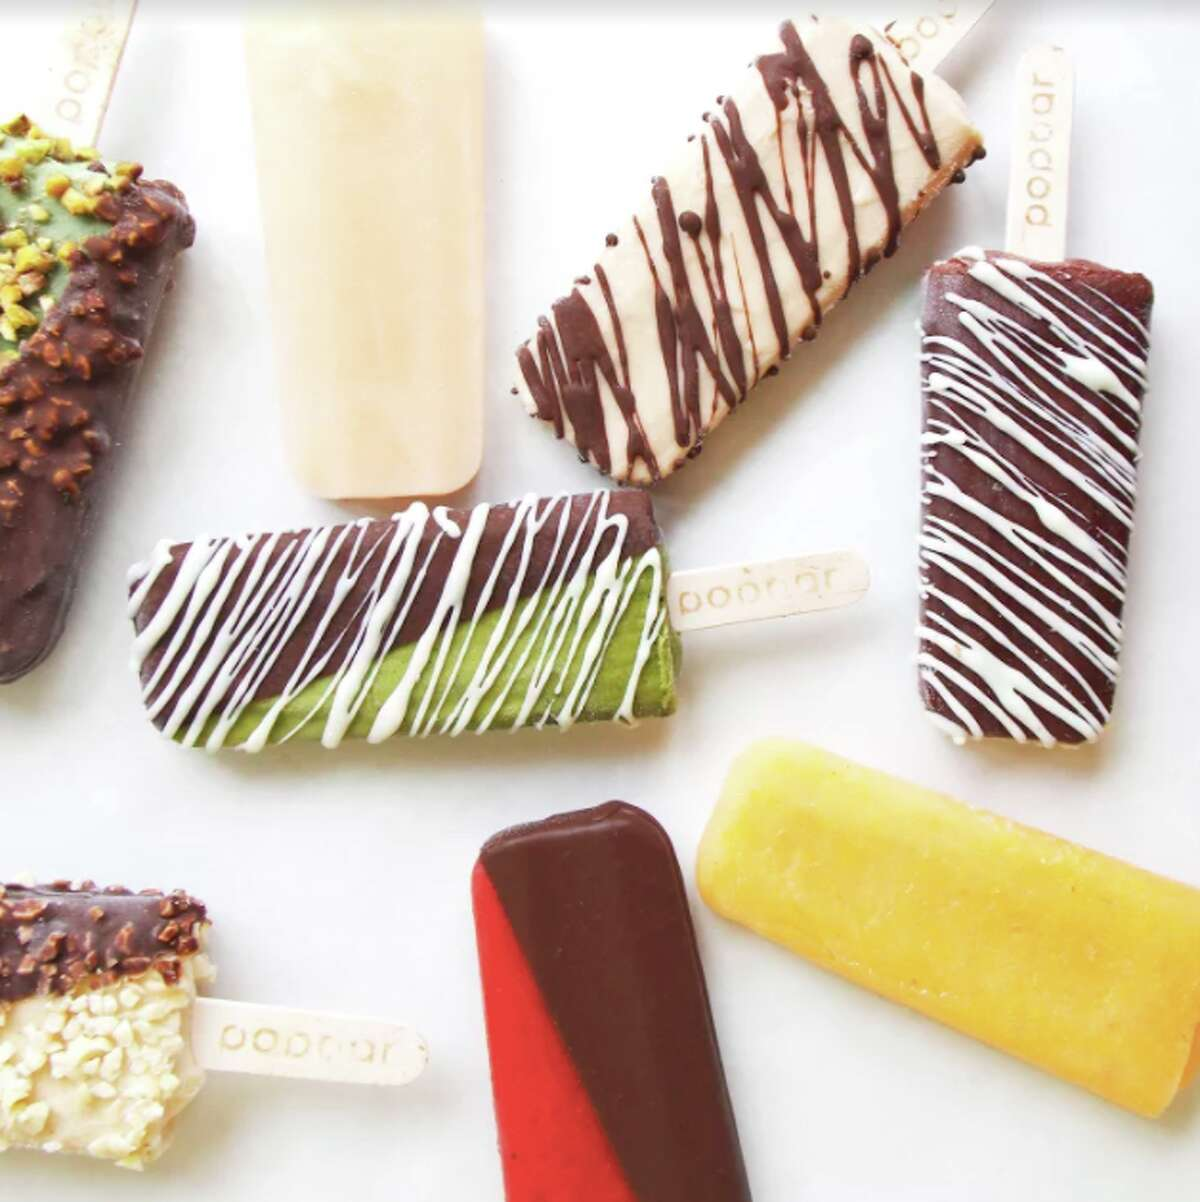 Gourmet ice cream bar shop Popbar is opening its first Houston-area location at Baybrook Mall.